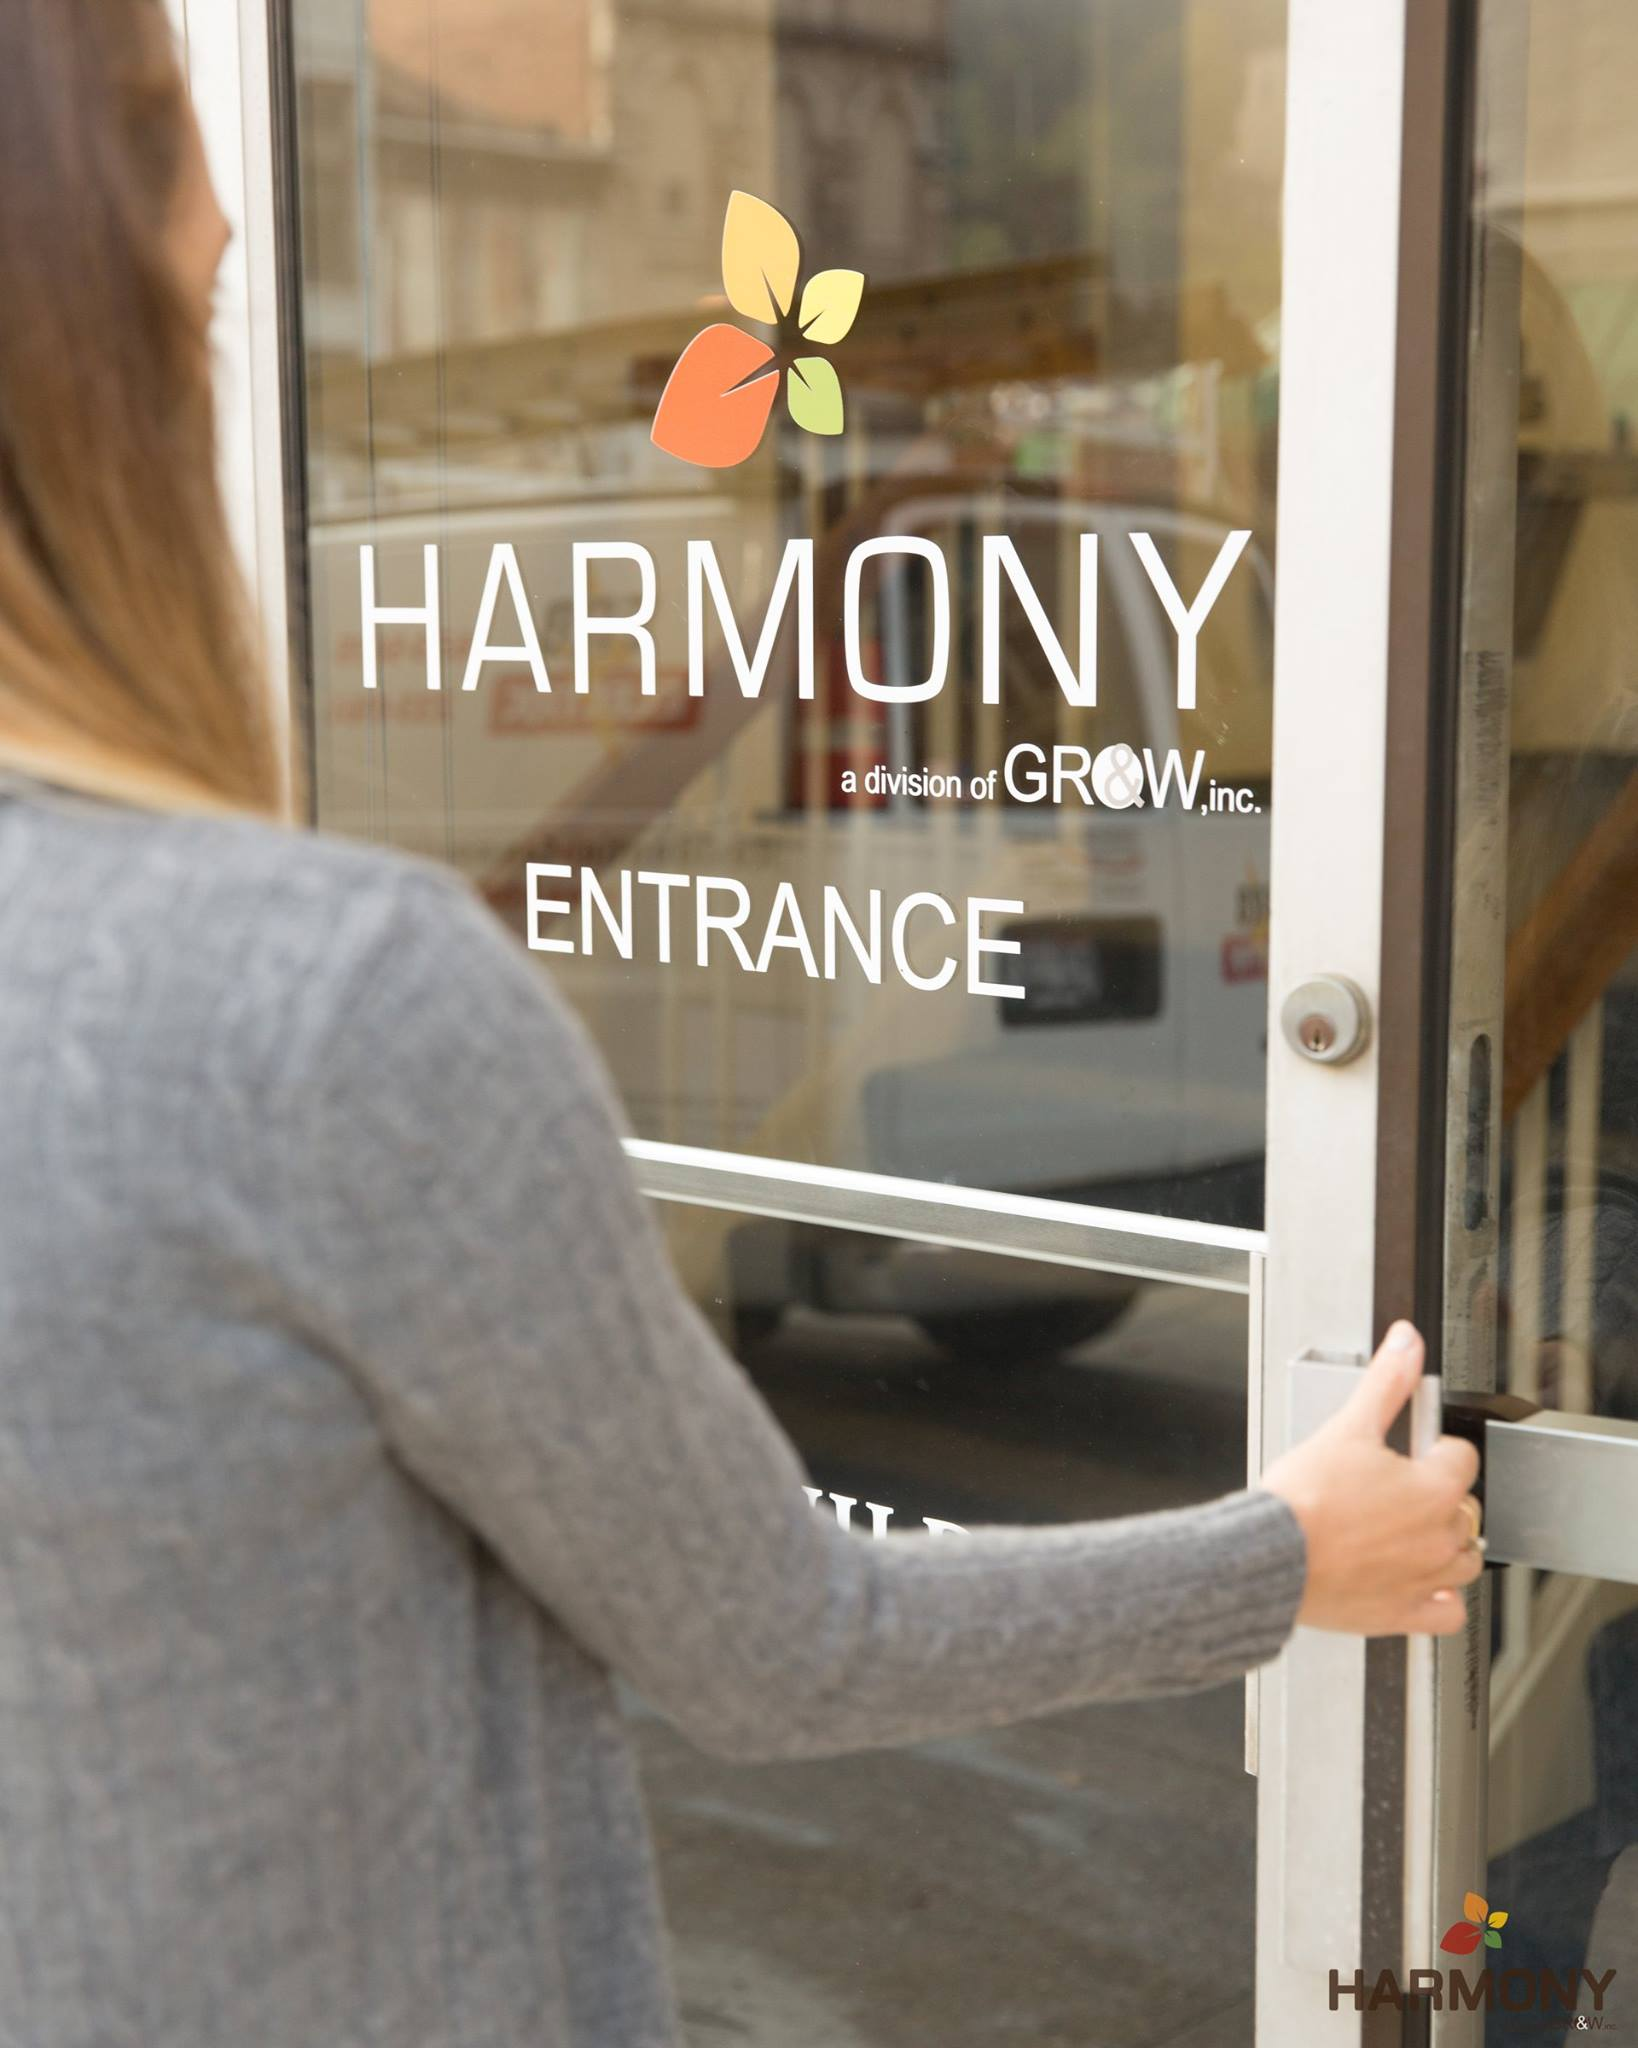 A woman with long dark blonde hair wearing a gray sweater opens the door to a harmony clinic in west virginia.